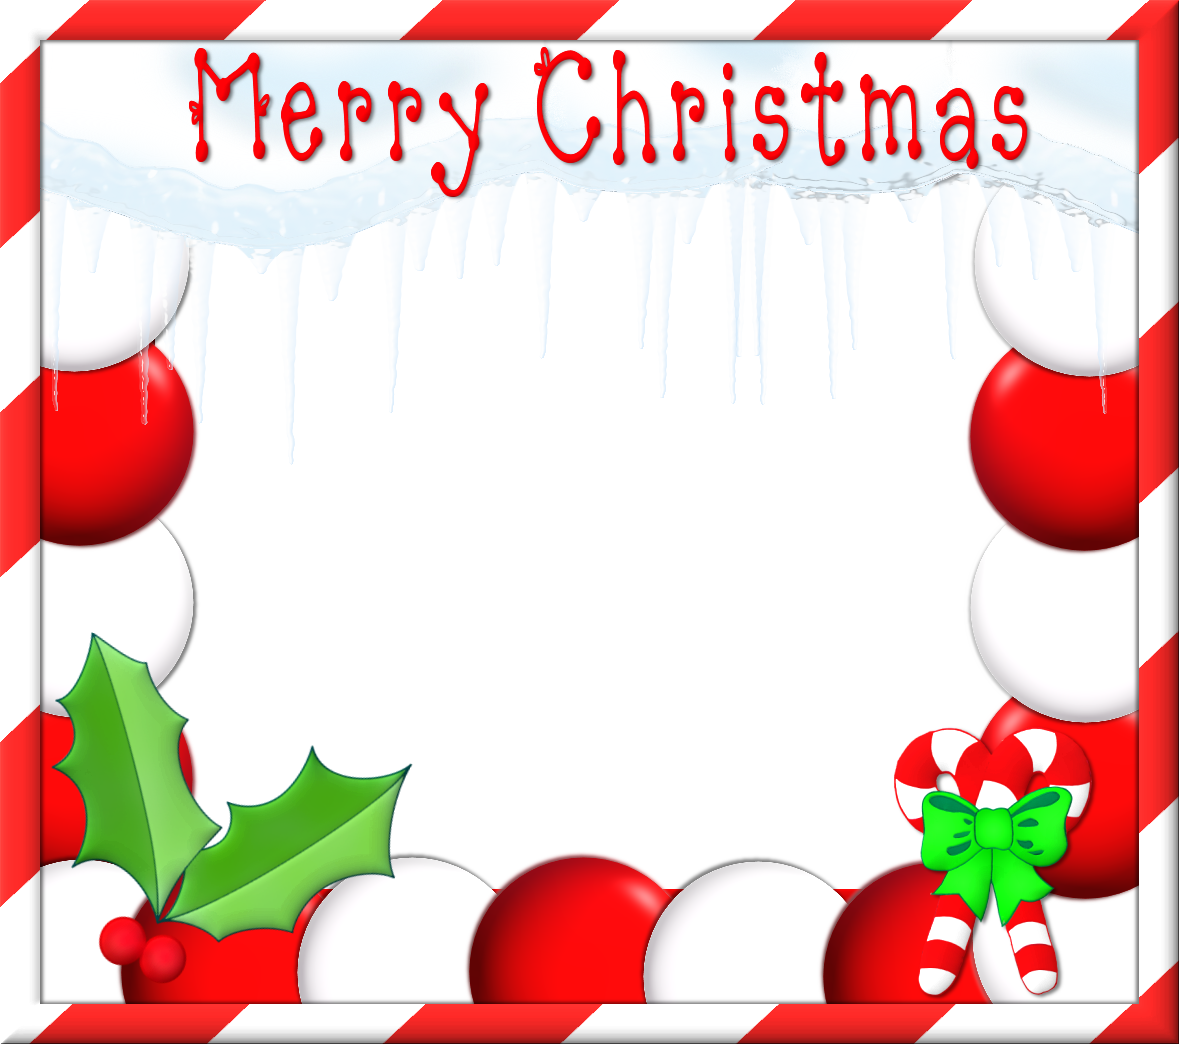 Free christmas frames and borders clipart picture transparent download Free Christmas Backgrounds Clipart, Download Free Clip Art, Free ... picture transparent download